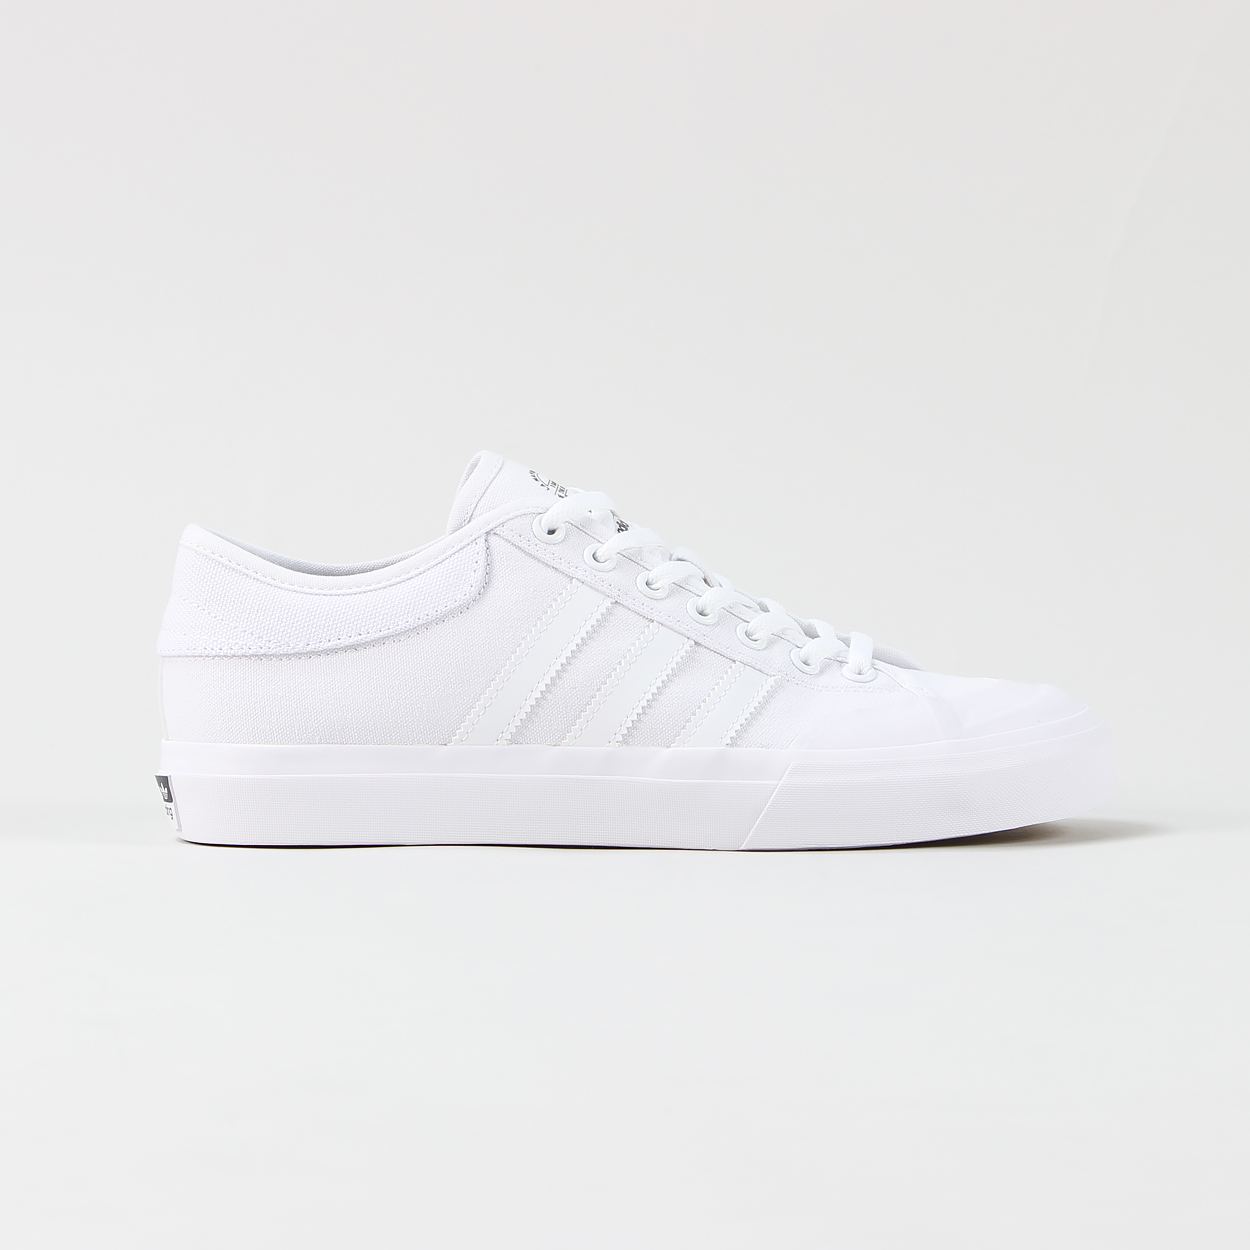 plus récent 833e0 21901 Adidas skateboarding white canvas matchcourt skate shoes ...